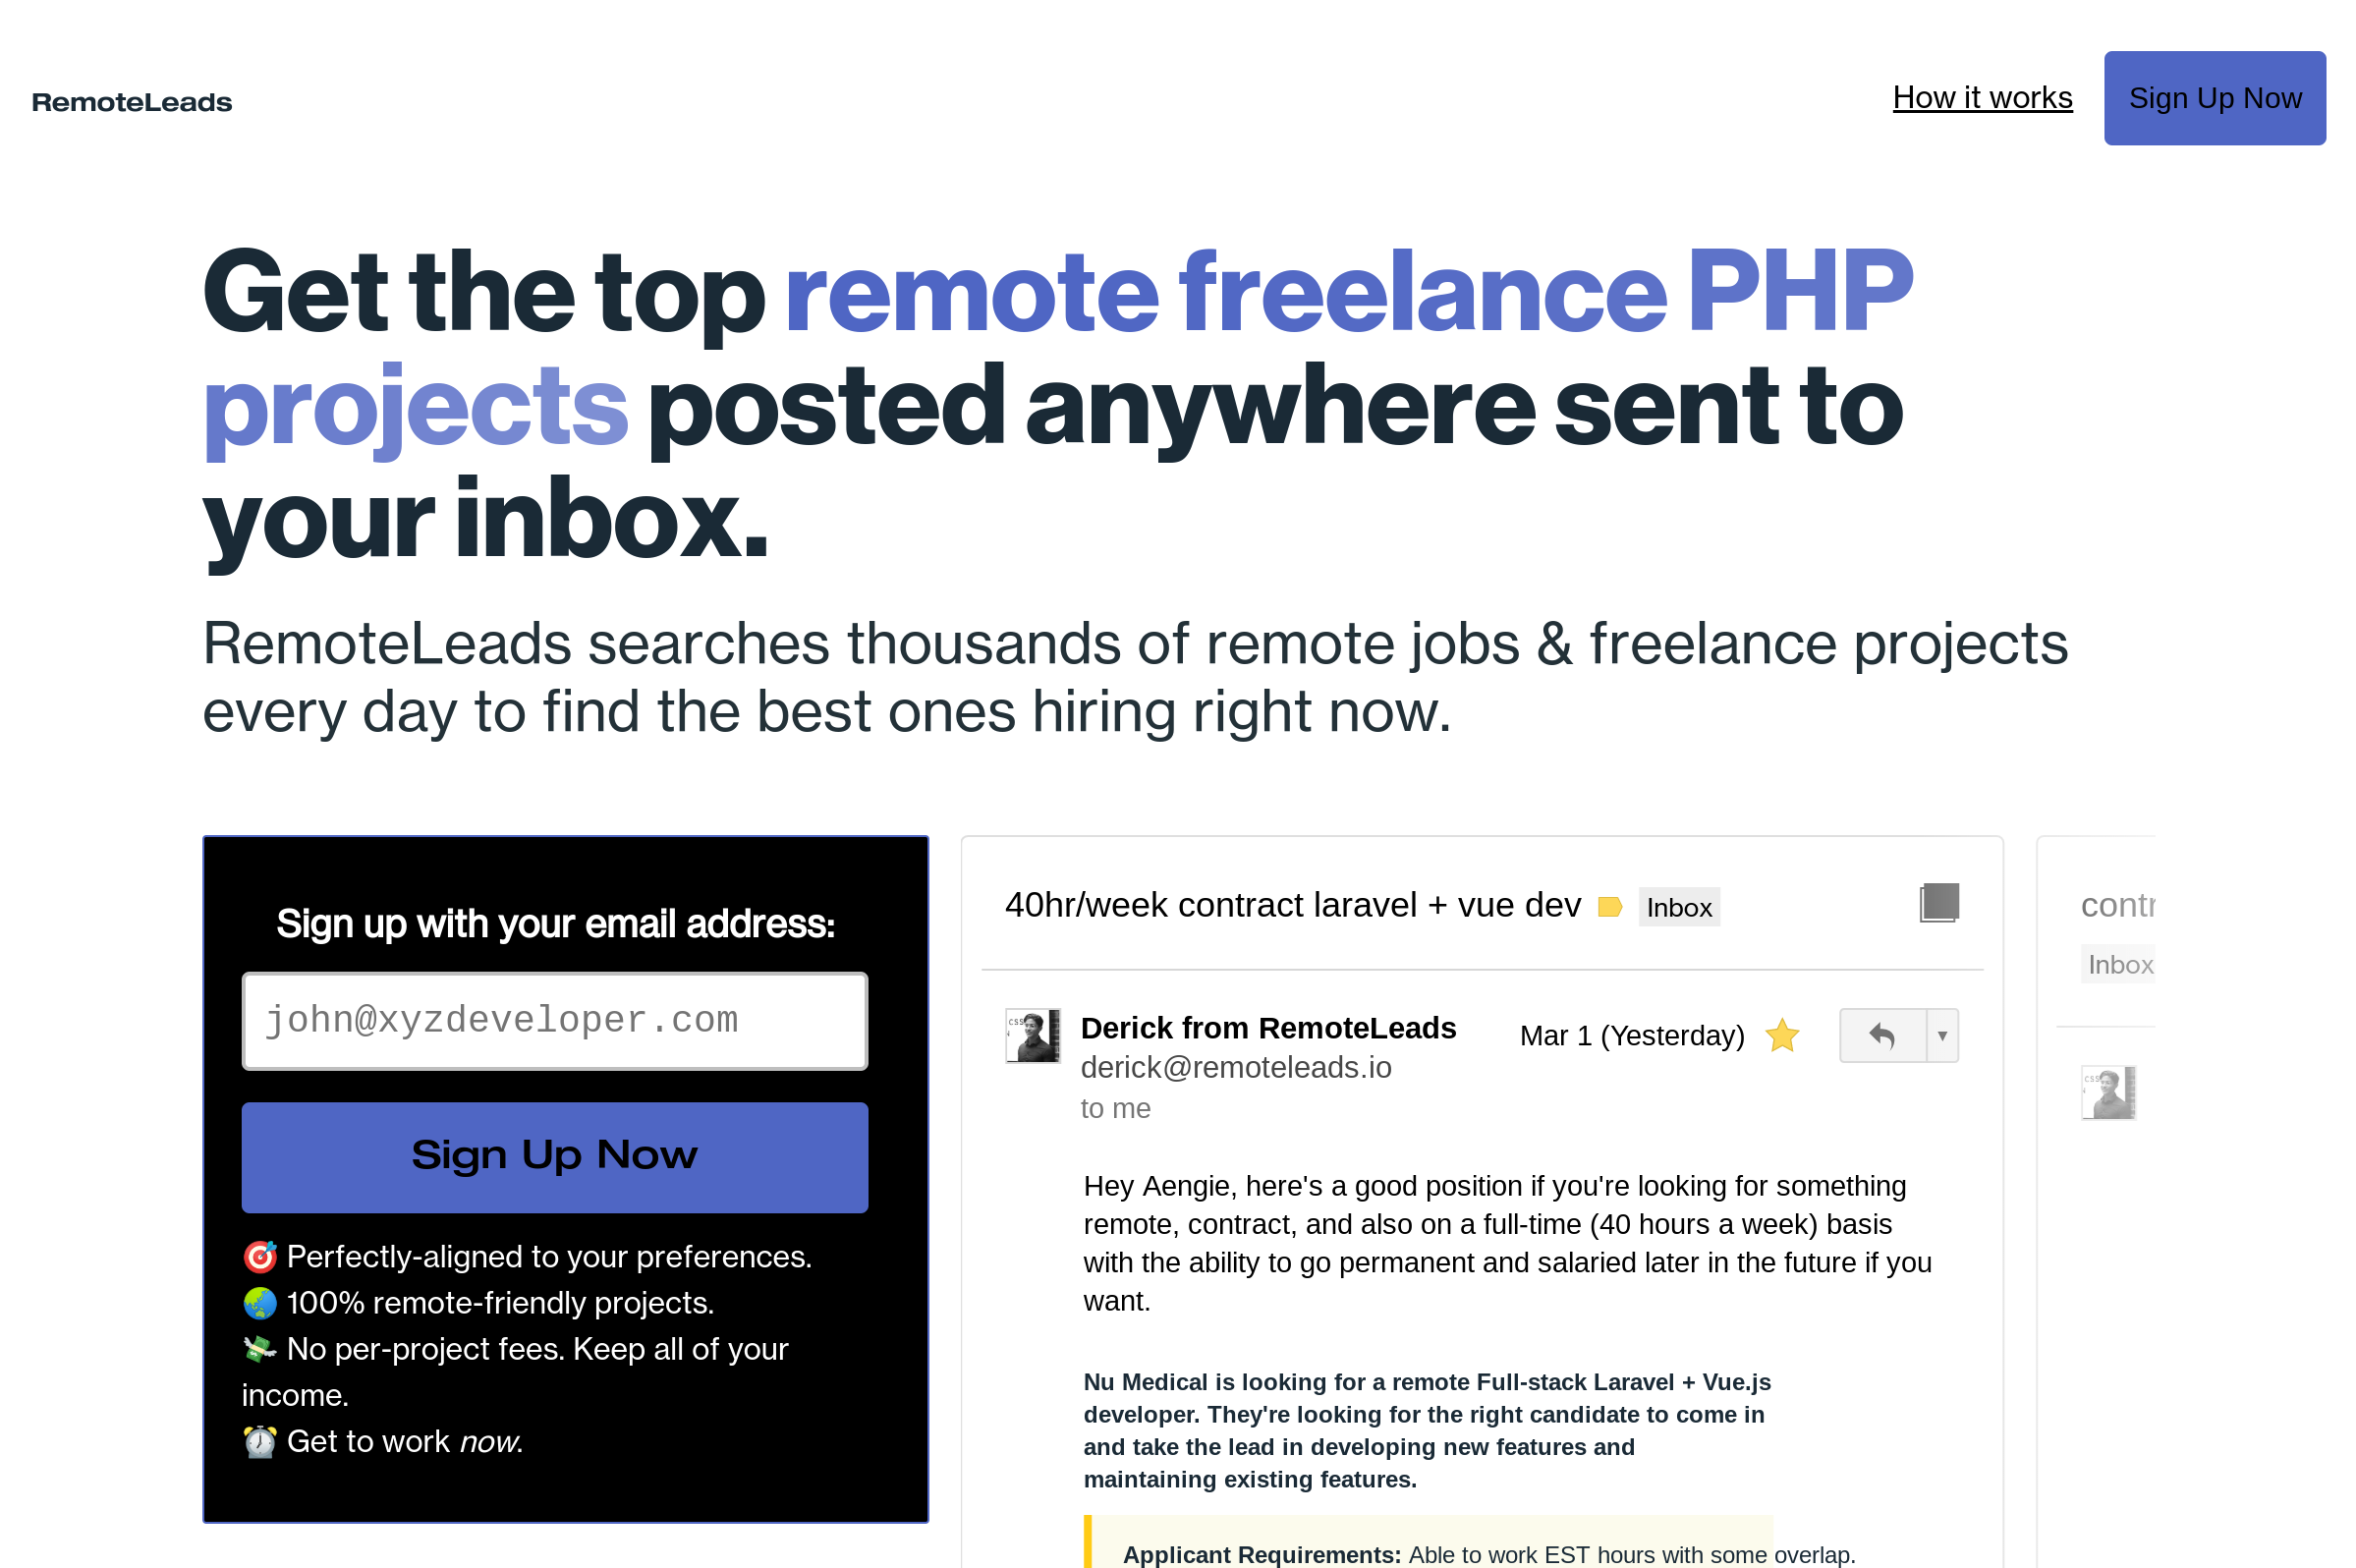 Find remote freelance PHP jobs at RemoteLeads.